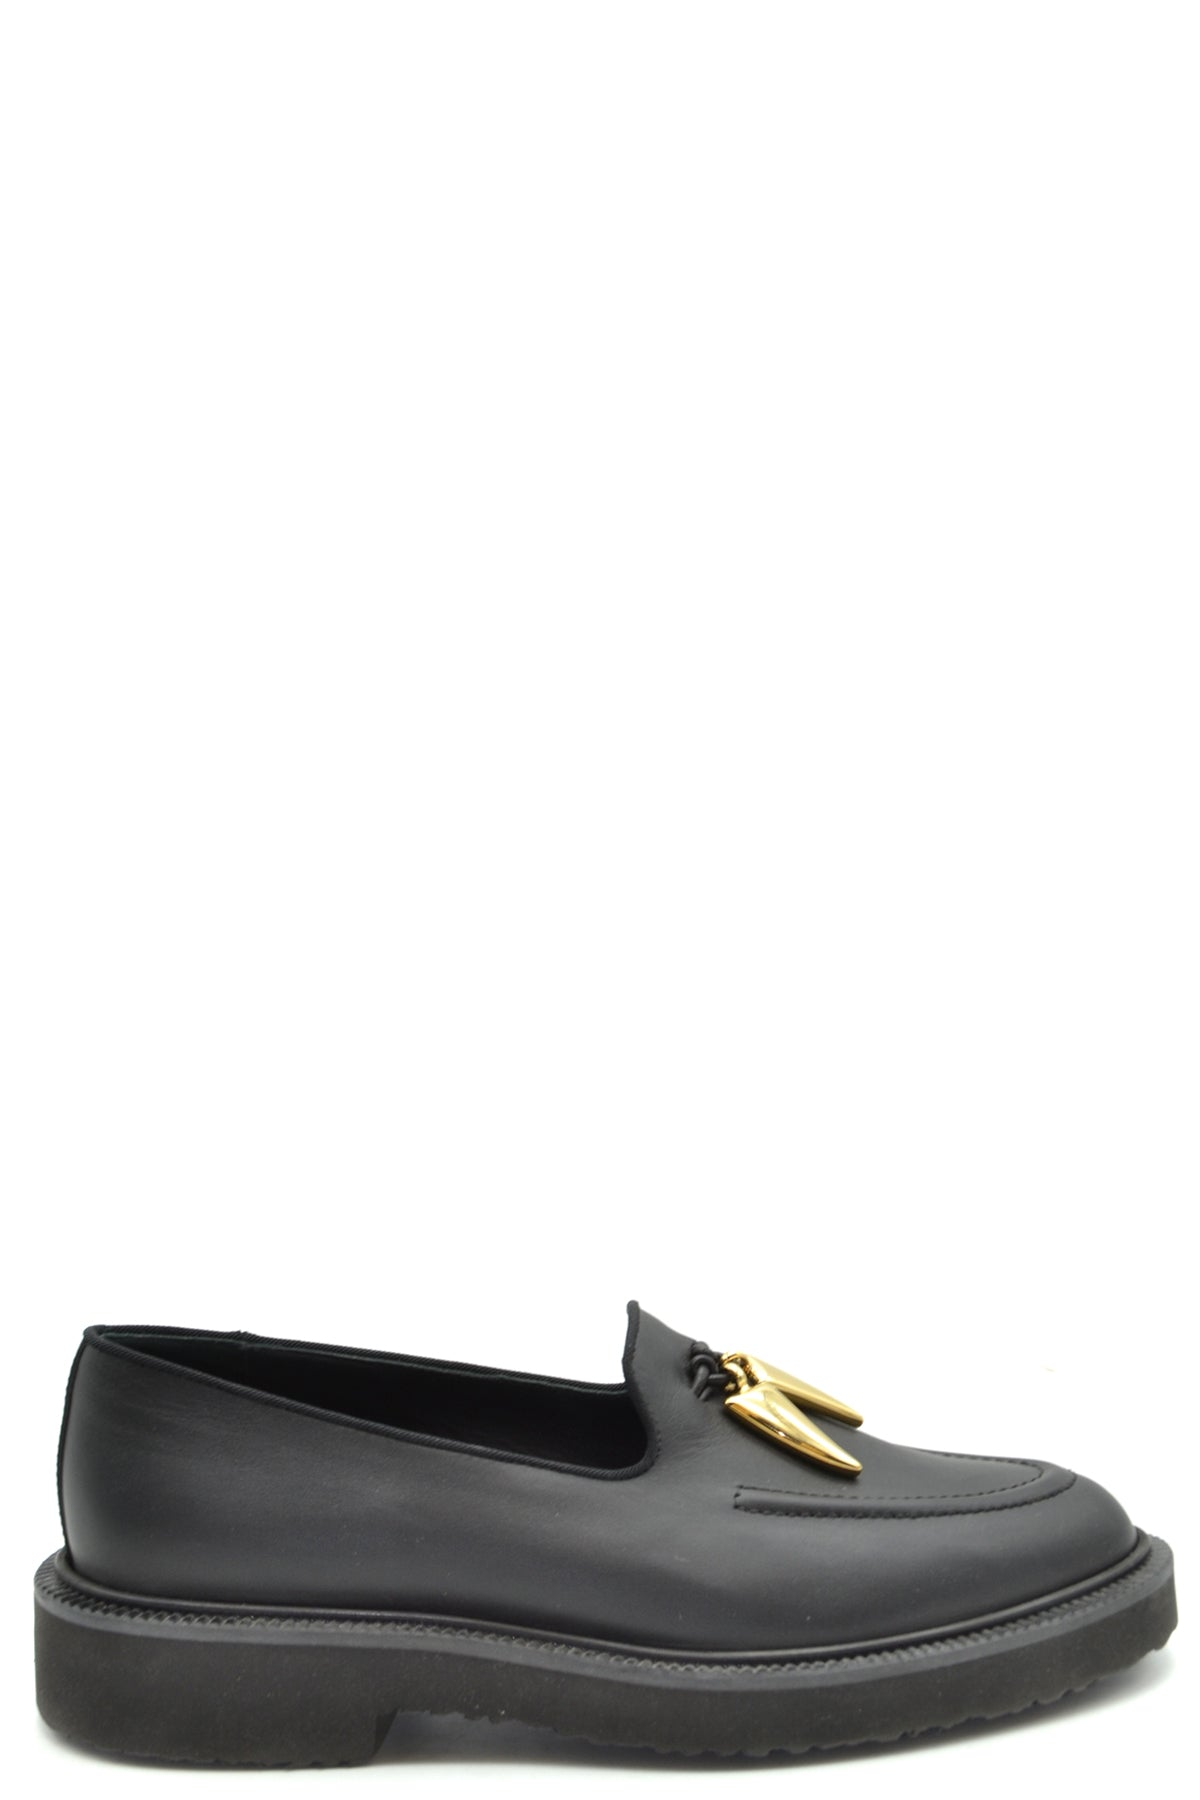 Shoes Giuseppe Zanotti-Classic flats - WOMAN-36.5-Product Details Type Of Accessory: ShoesTerms: New With LabelYear: 2018Main Color: BlackGender: WomanMade In: ItalyManufacturer Part Number: I860025Size: EuSeason: Fall / WinterComposition: Leather 100%-Keyomi-Sook